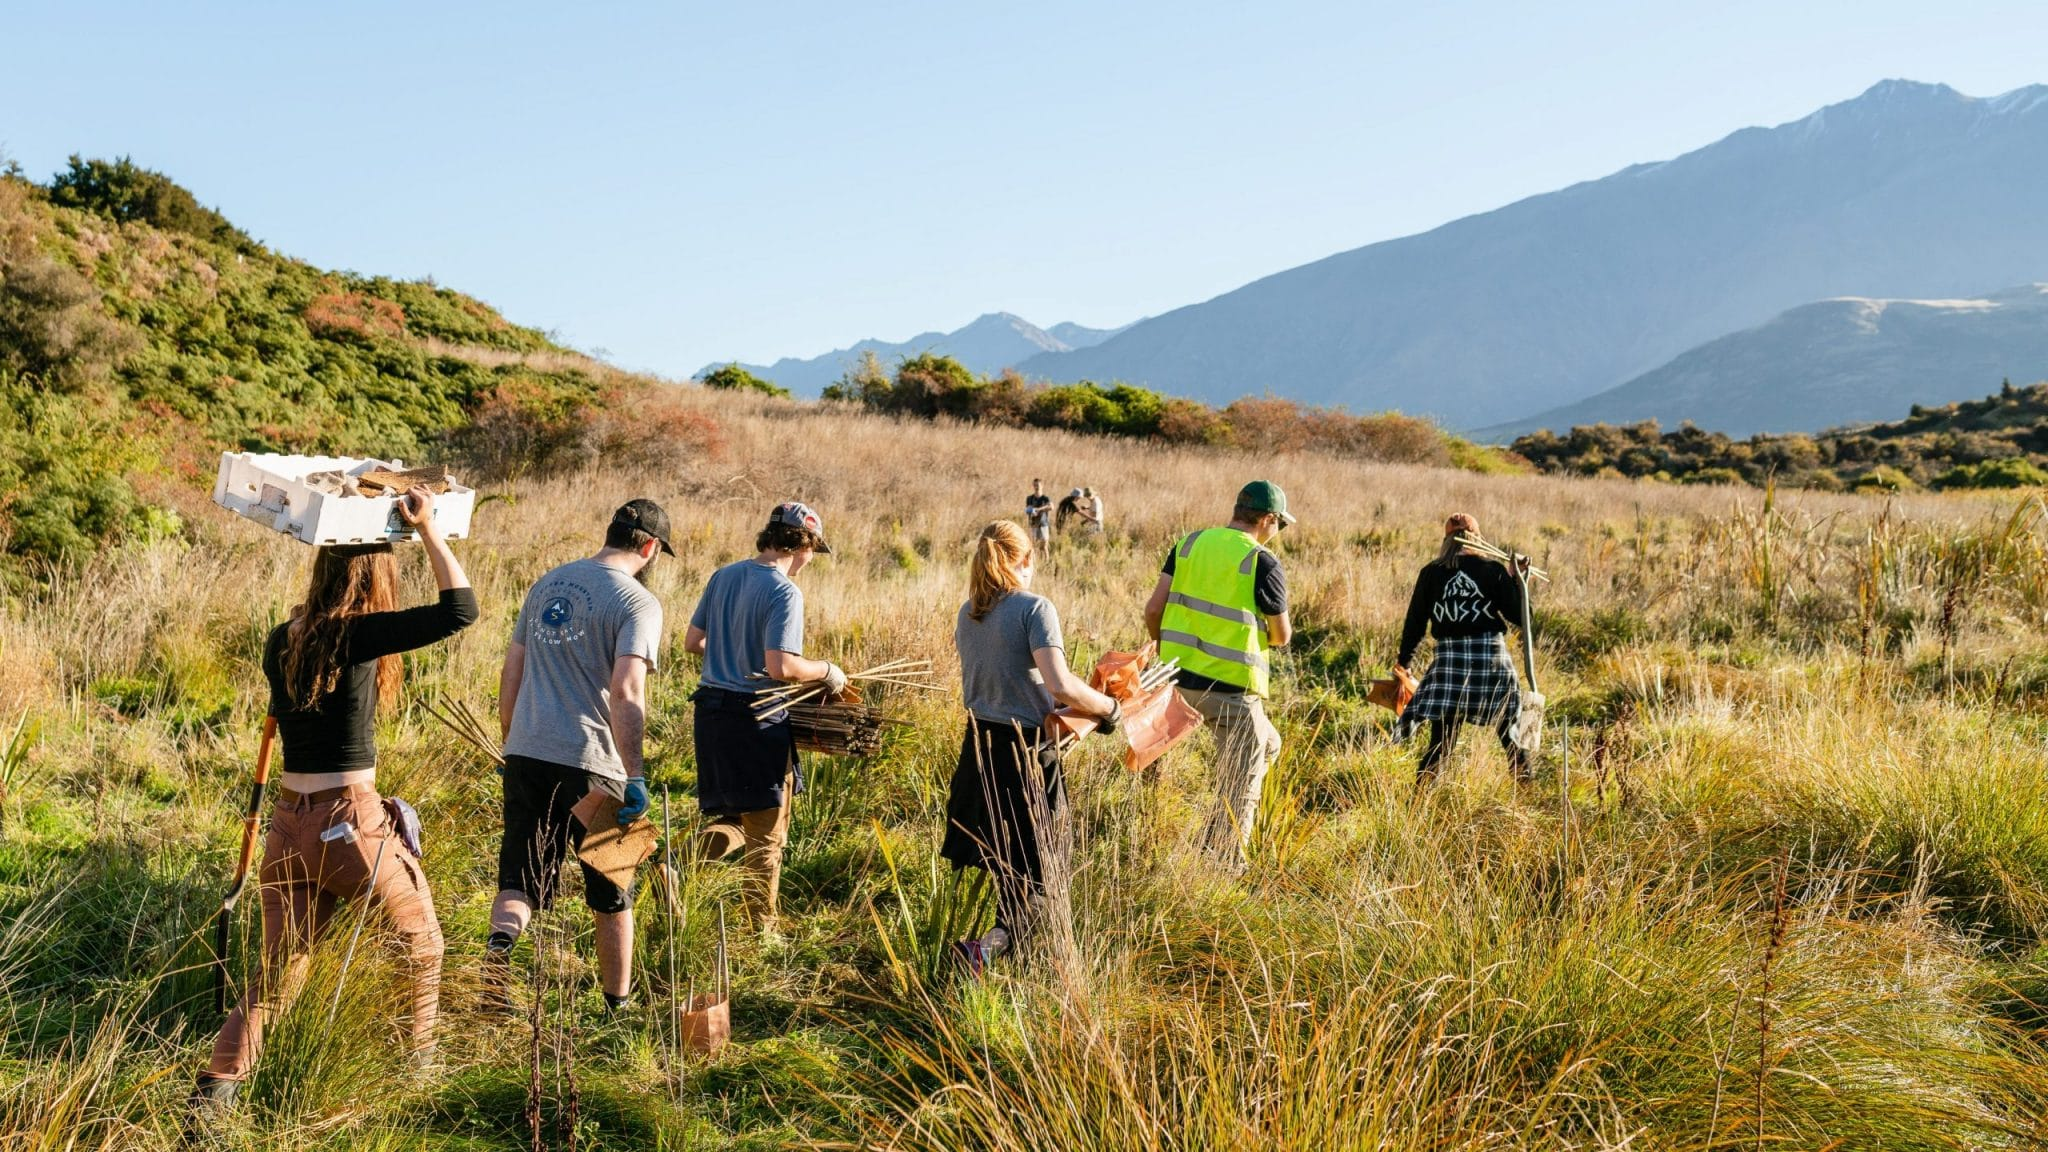 Volunteers walking to the planting site with planting equipment